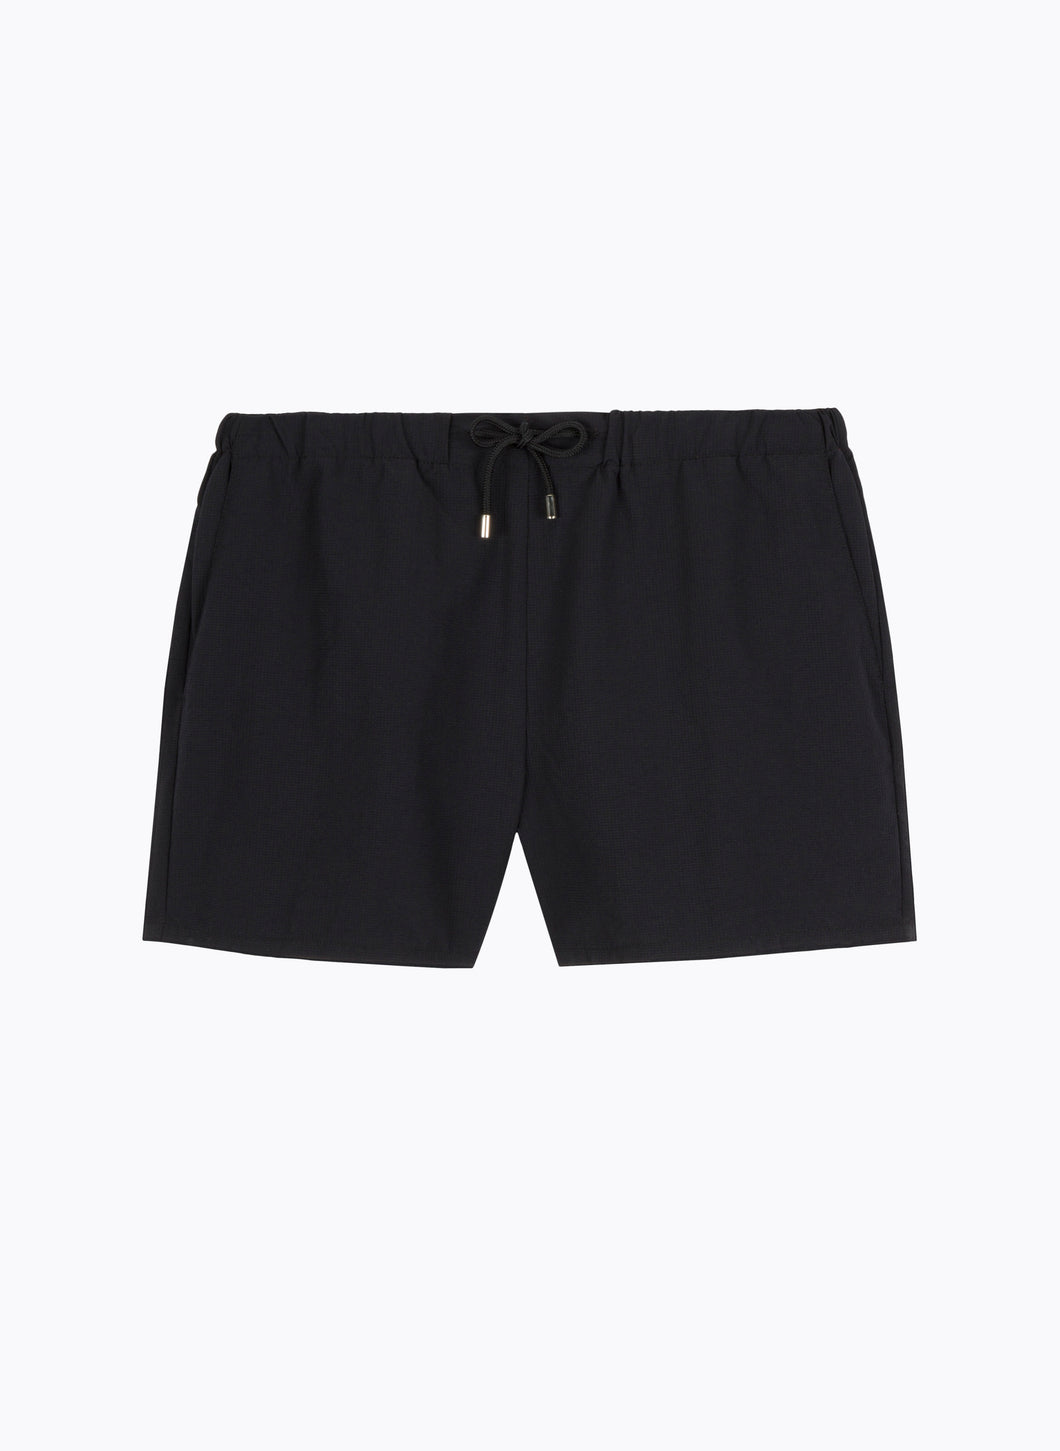 Swim Shorts with Italian Pockets in Black Ripstop